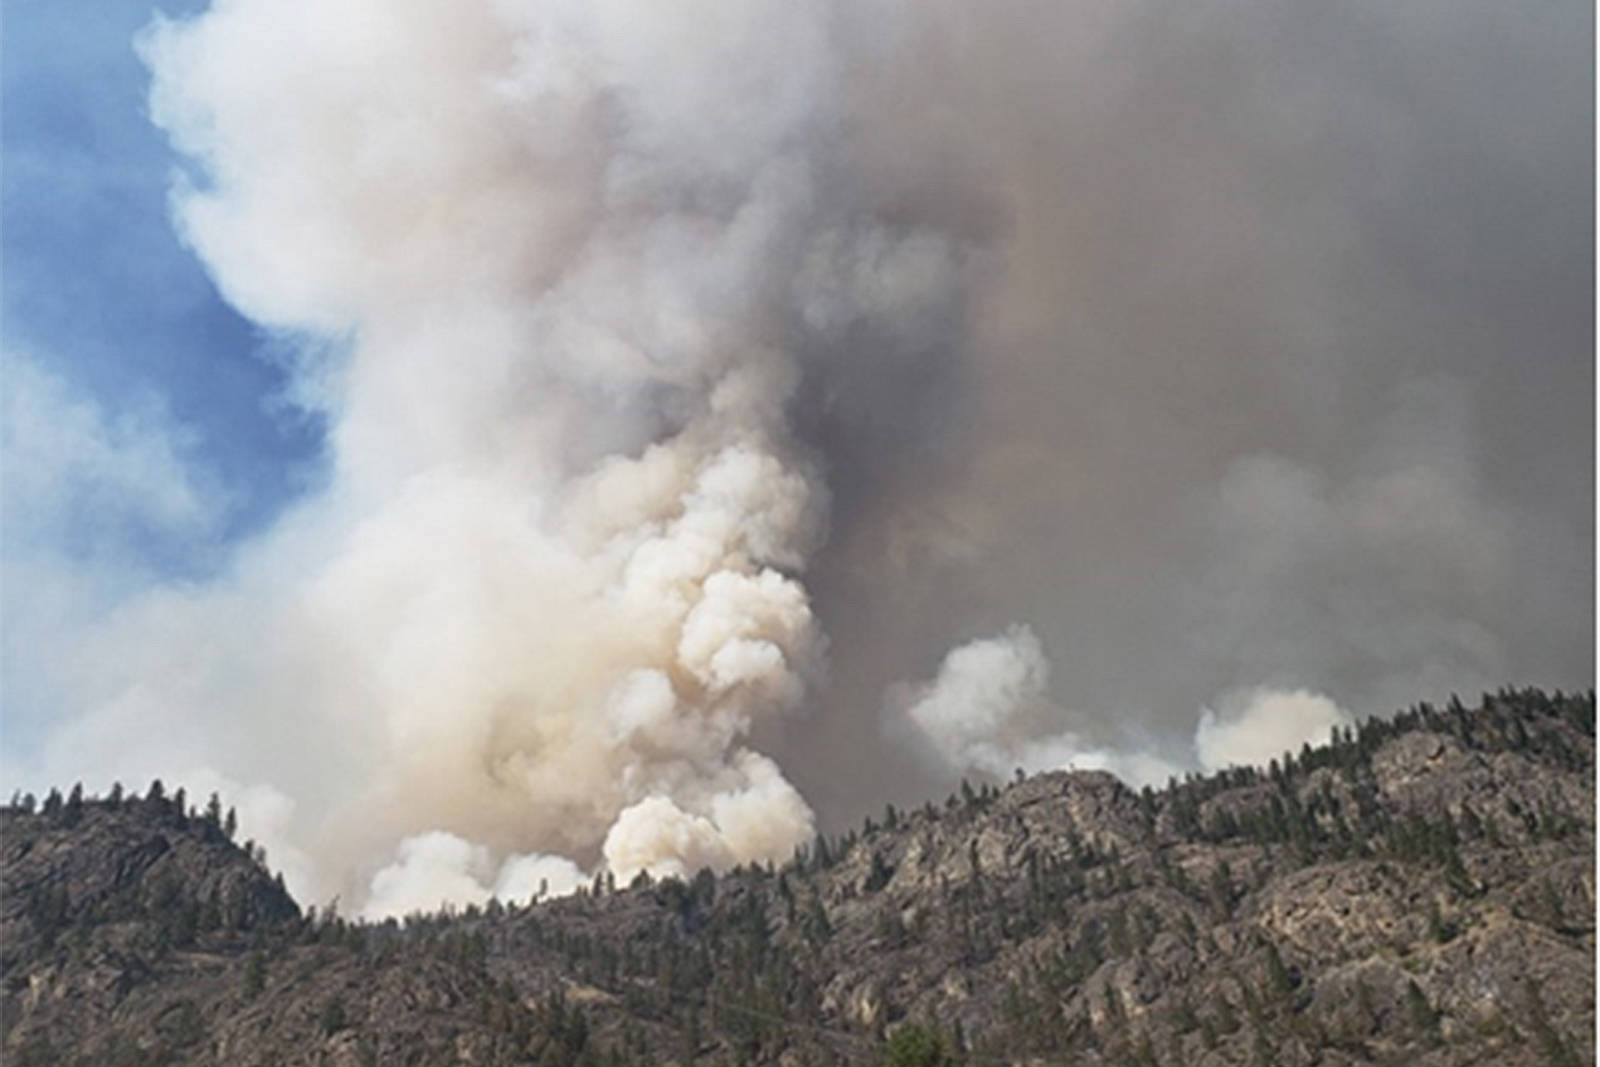 The Nk'Mip Creek Wildfire is over 6,500 hectares and growing. (BC Wildfire Service Twitter)